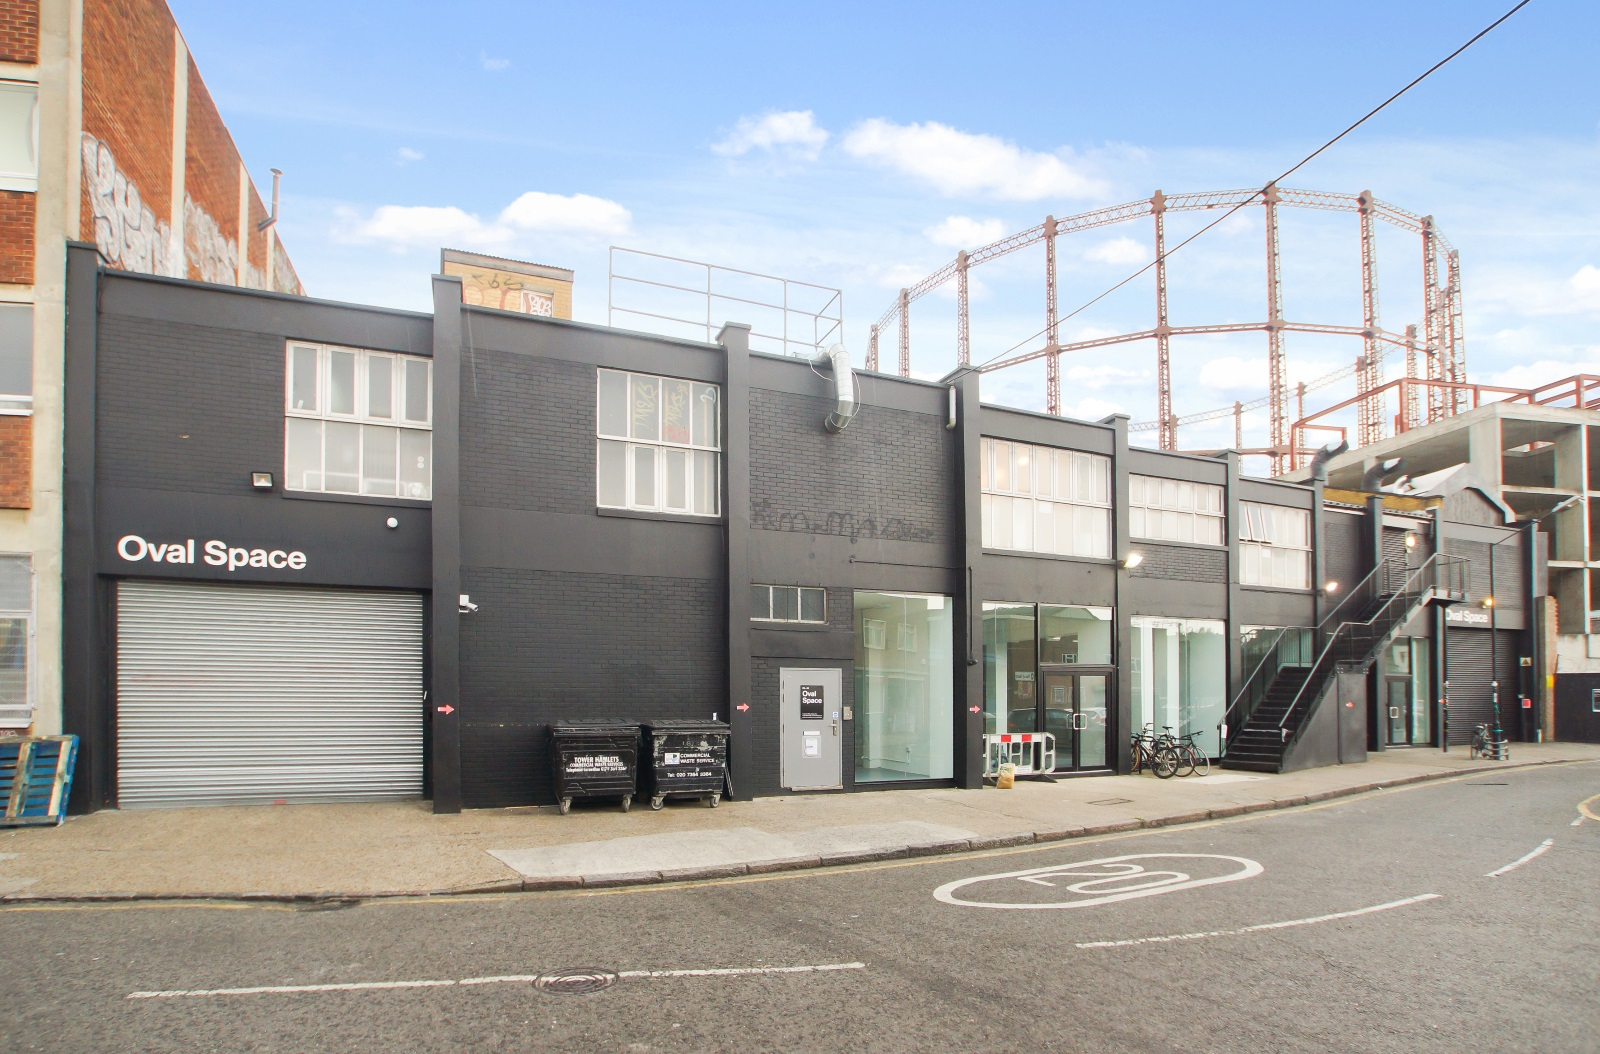 Commercial Property for Rent in Hackney - 29-32 The Oval ...